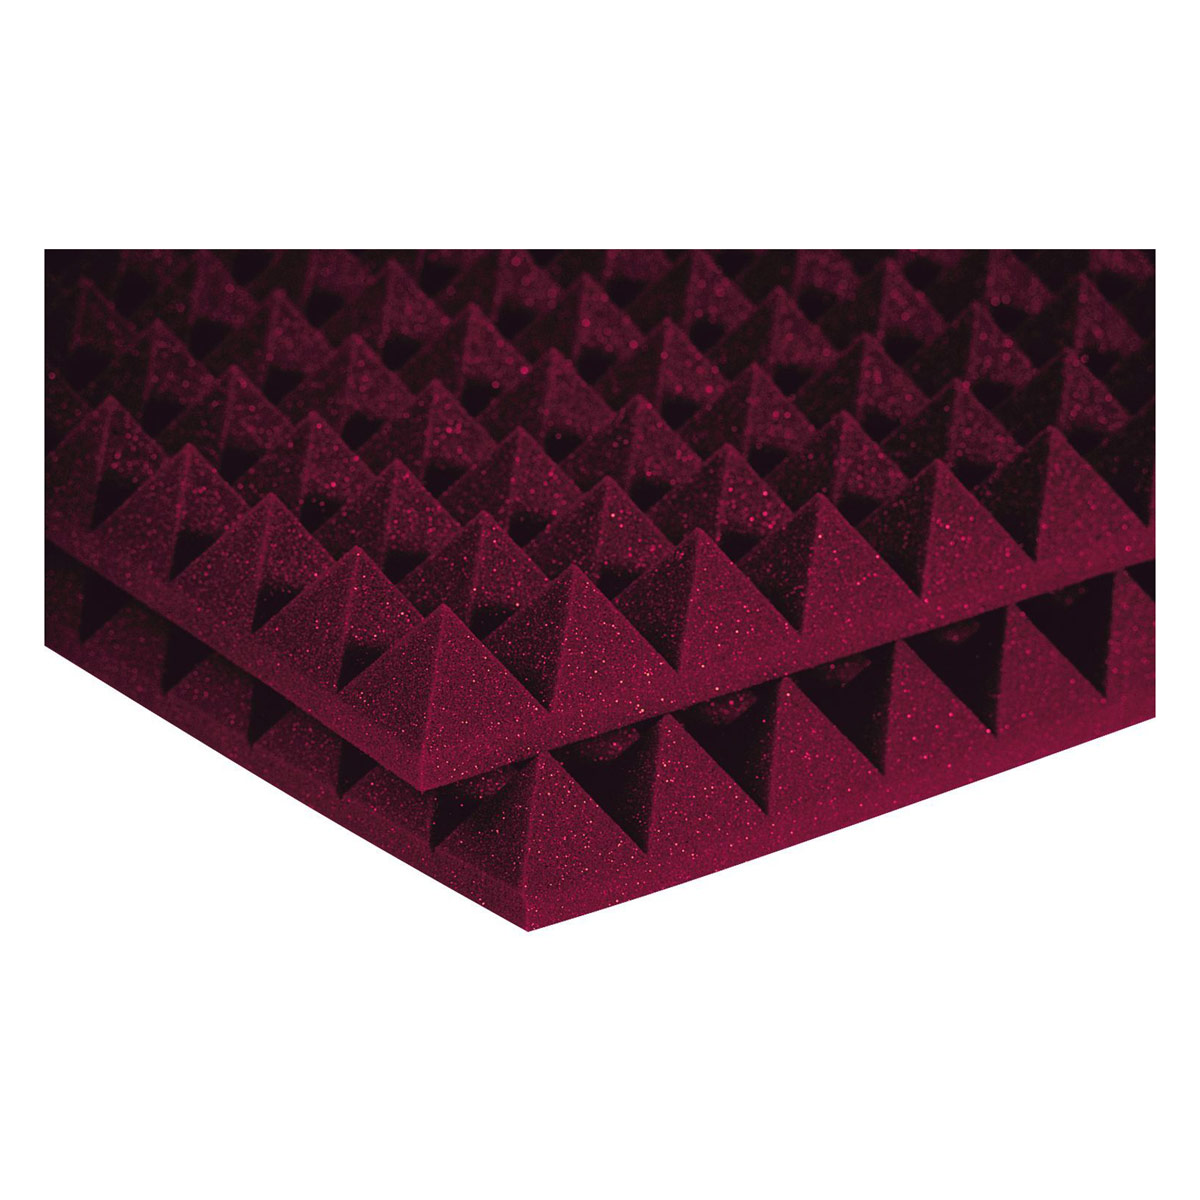 STUDIOFOAM PYRAMID BURGUNDY (SET OF 12)